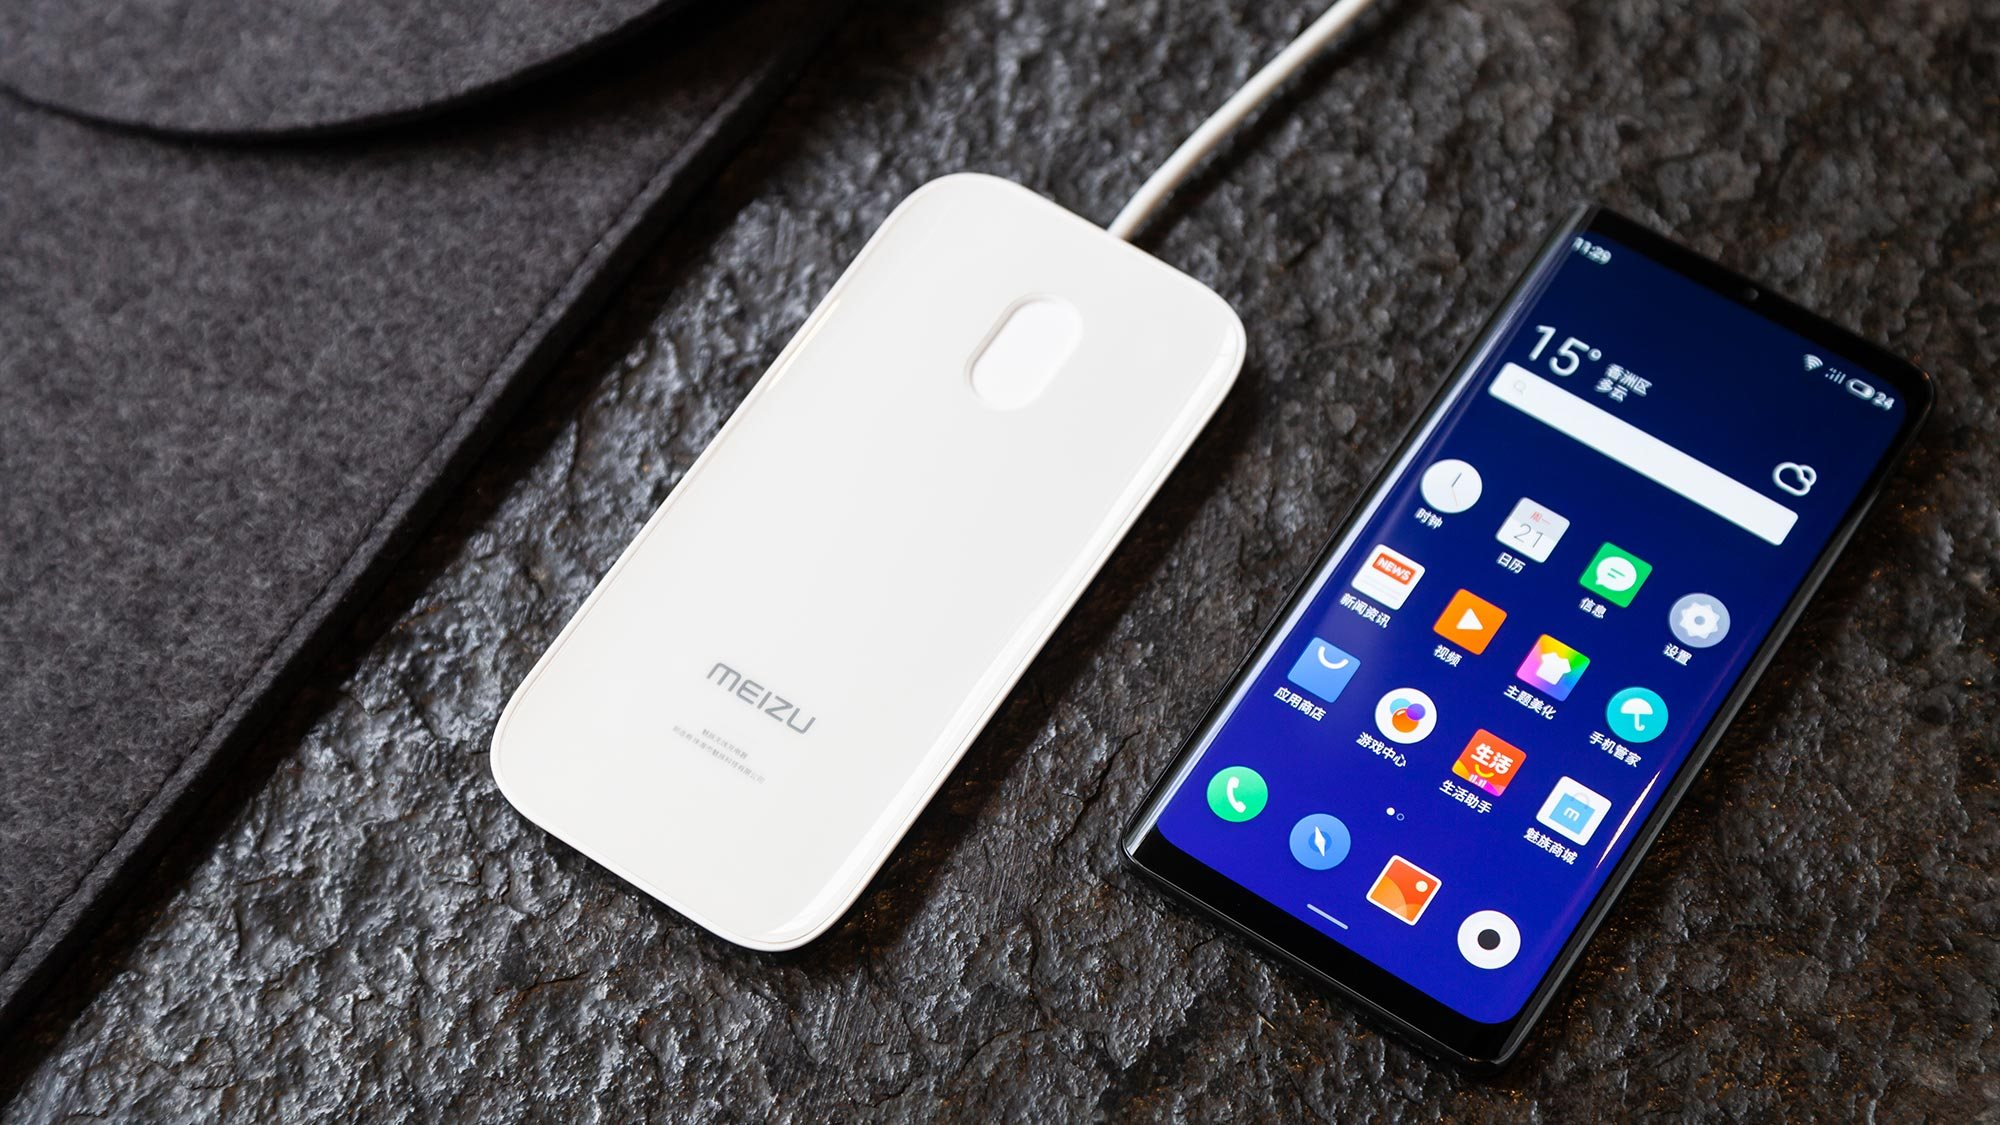 Meizu Zero is first smartphone with no buttons, ports or speakers